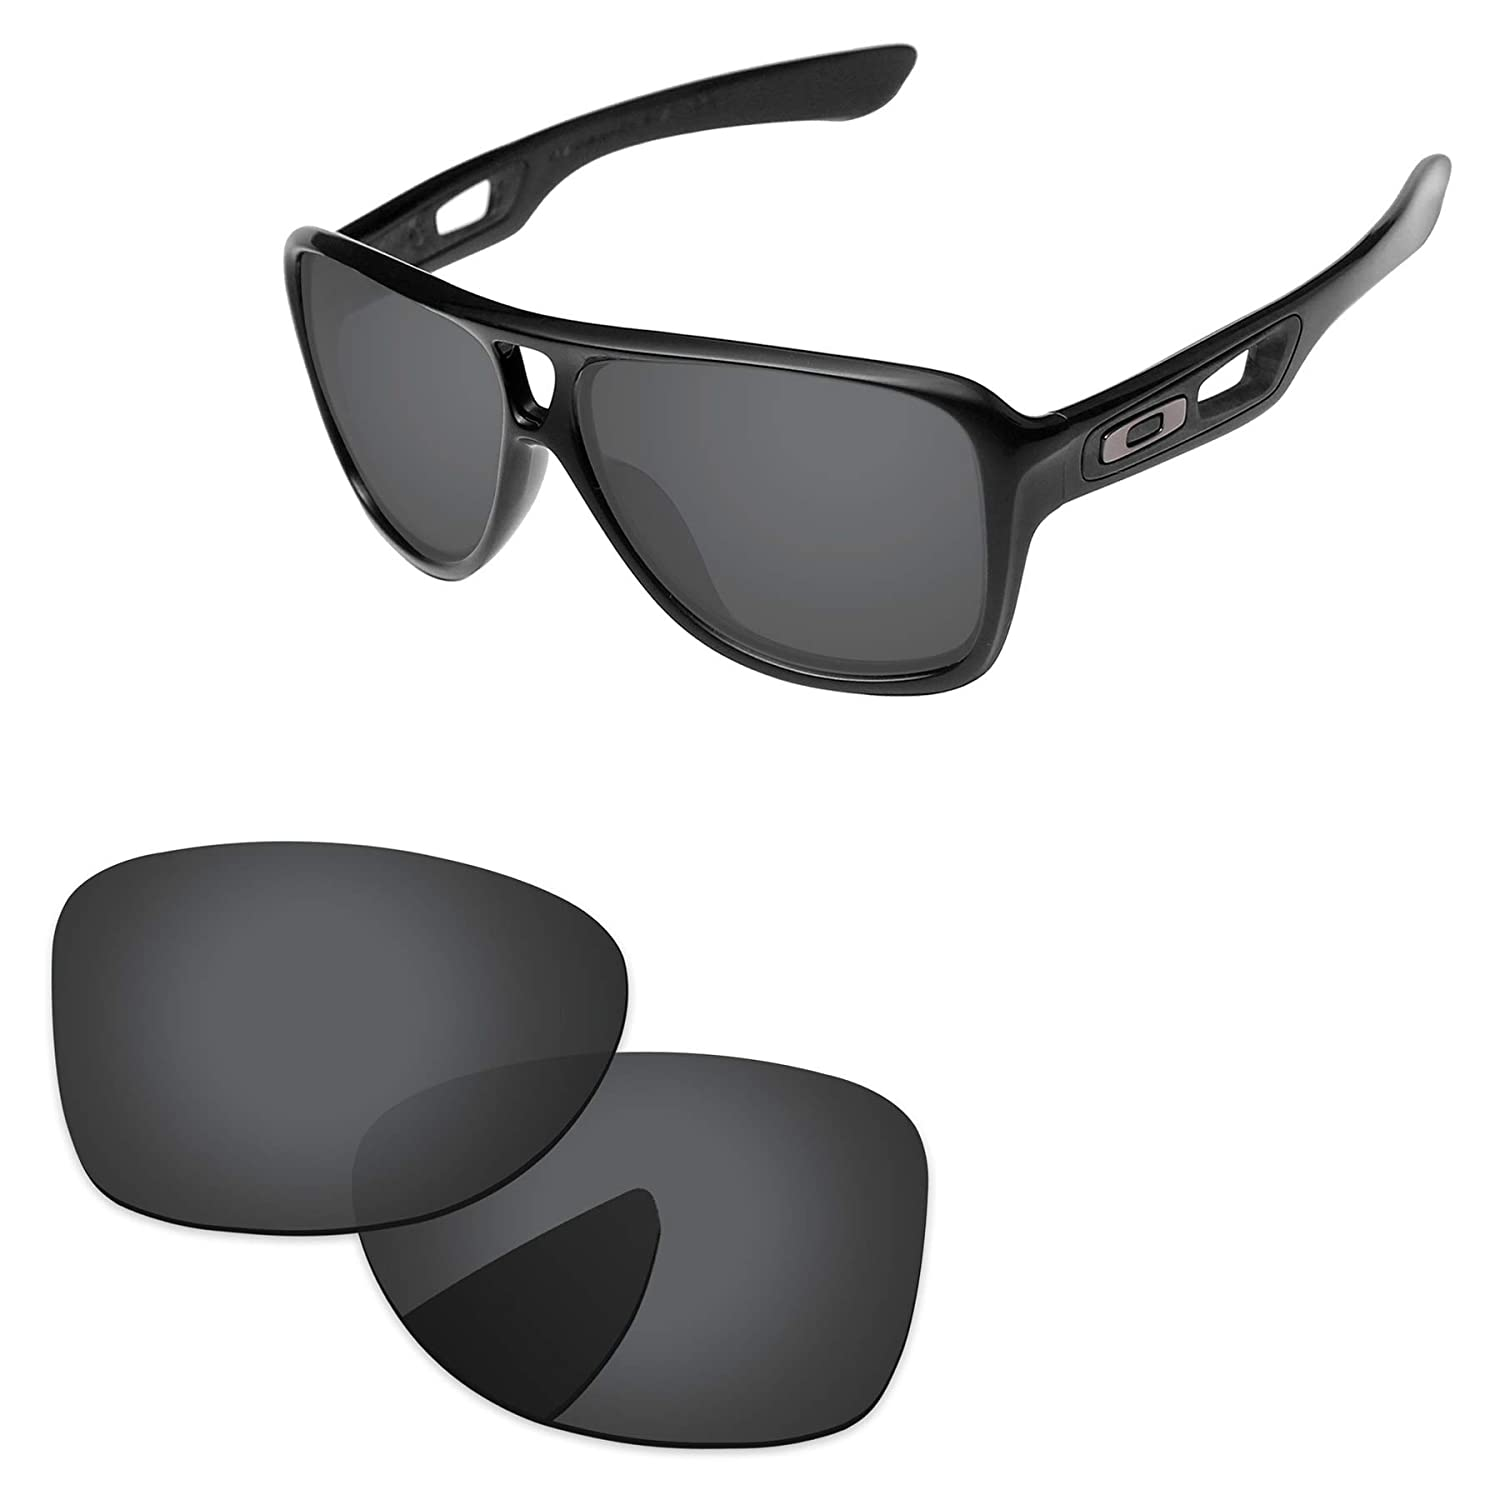 2b6408dfb8 Amazon.com  PapaViva Lenses Replacement for Oakley Dispatch 2 Black Grey   Clothing